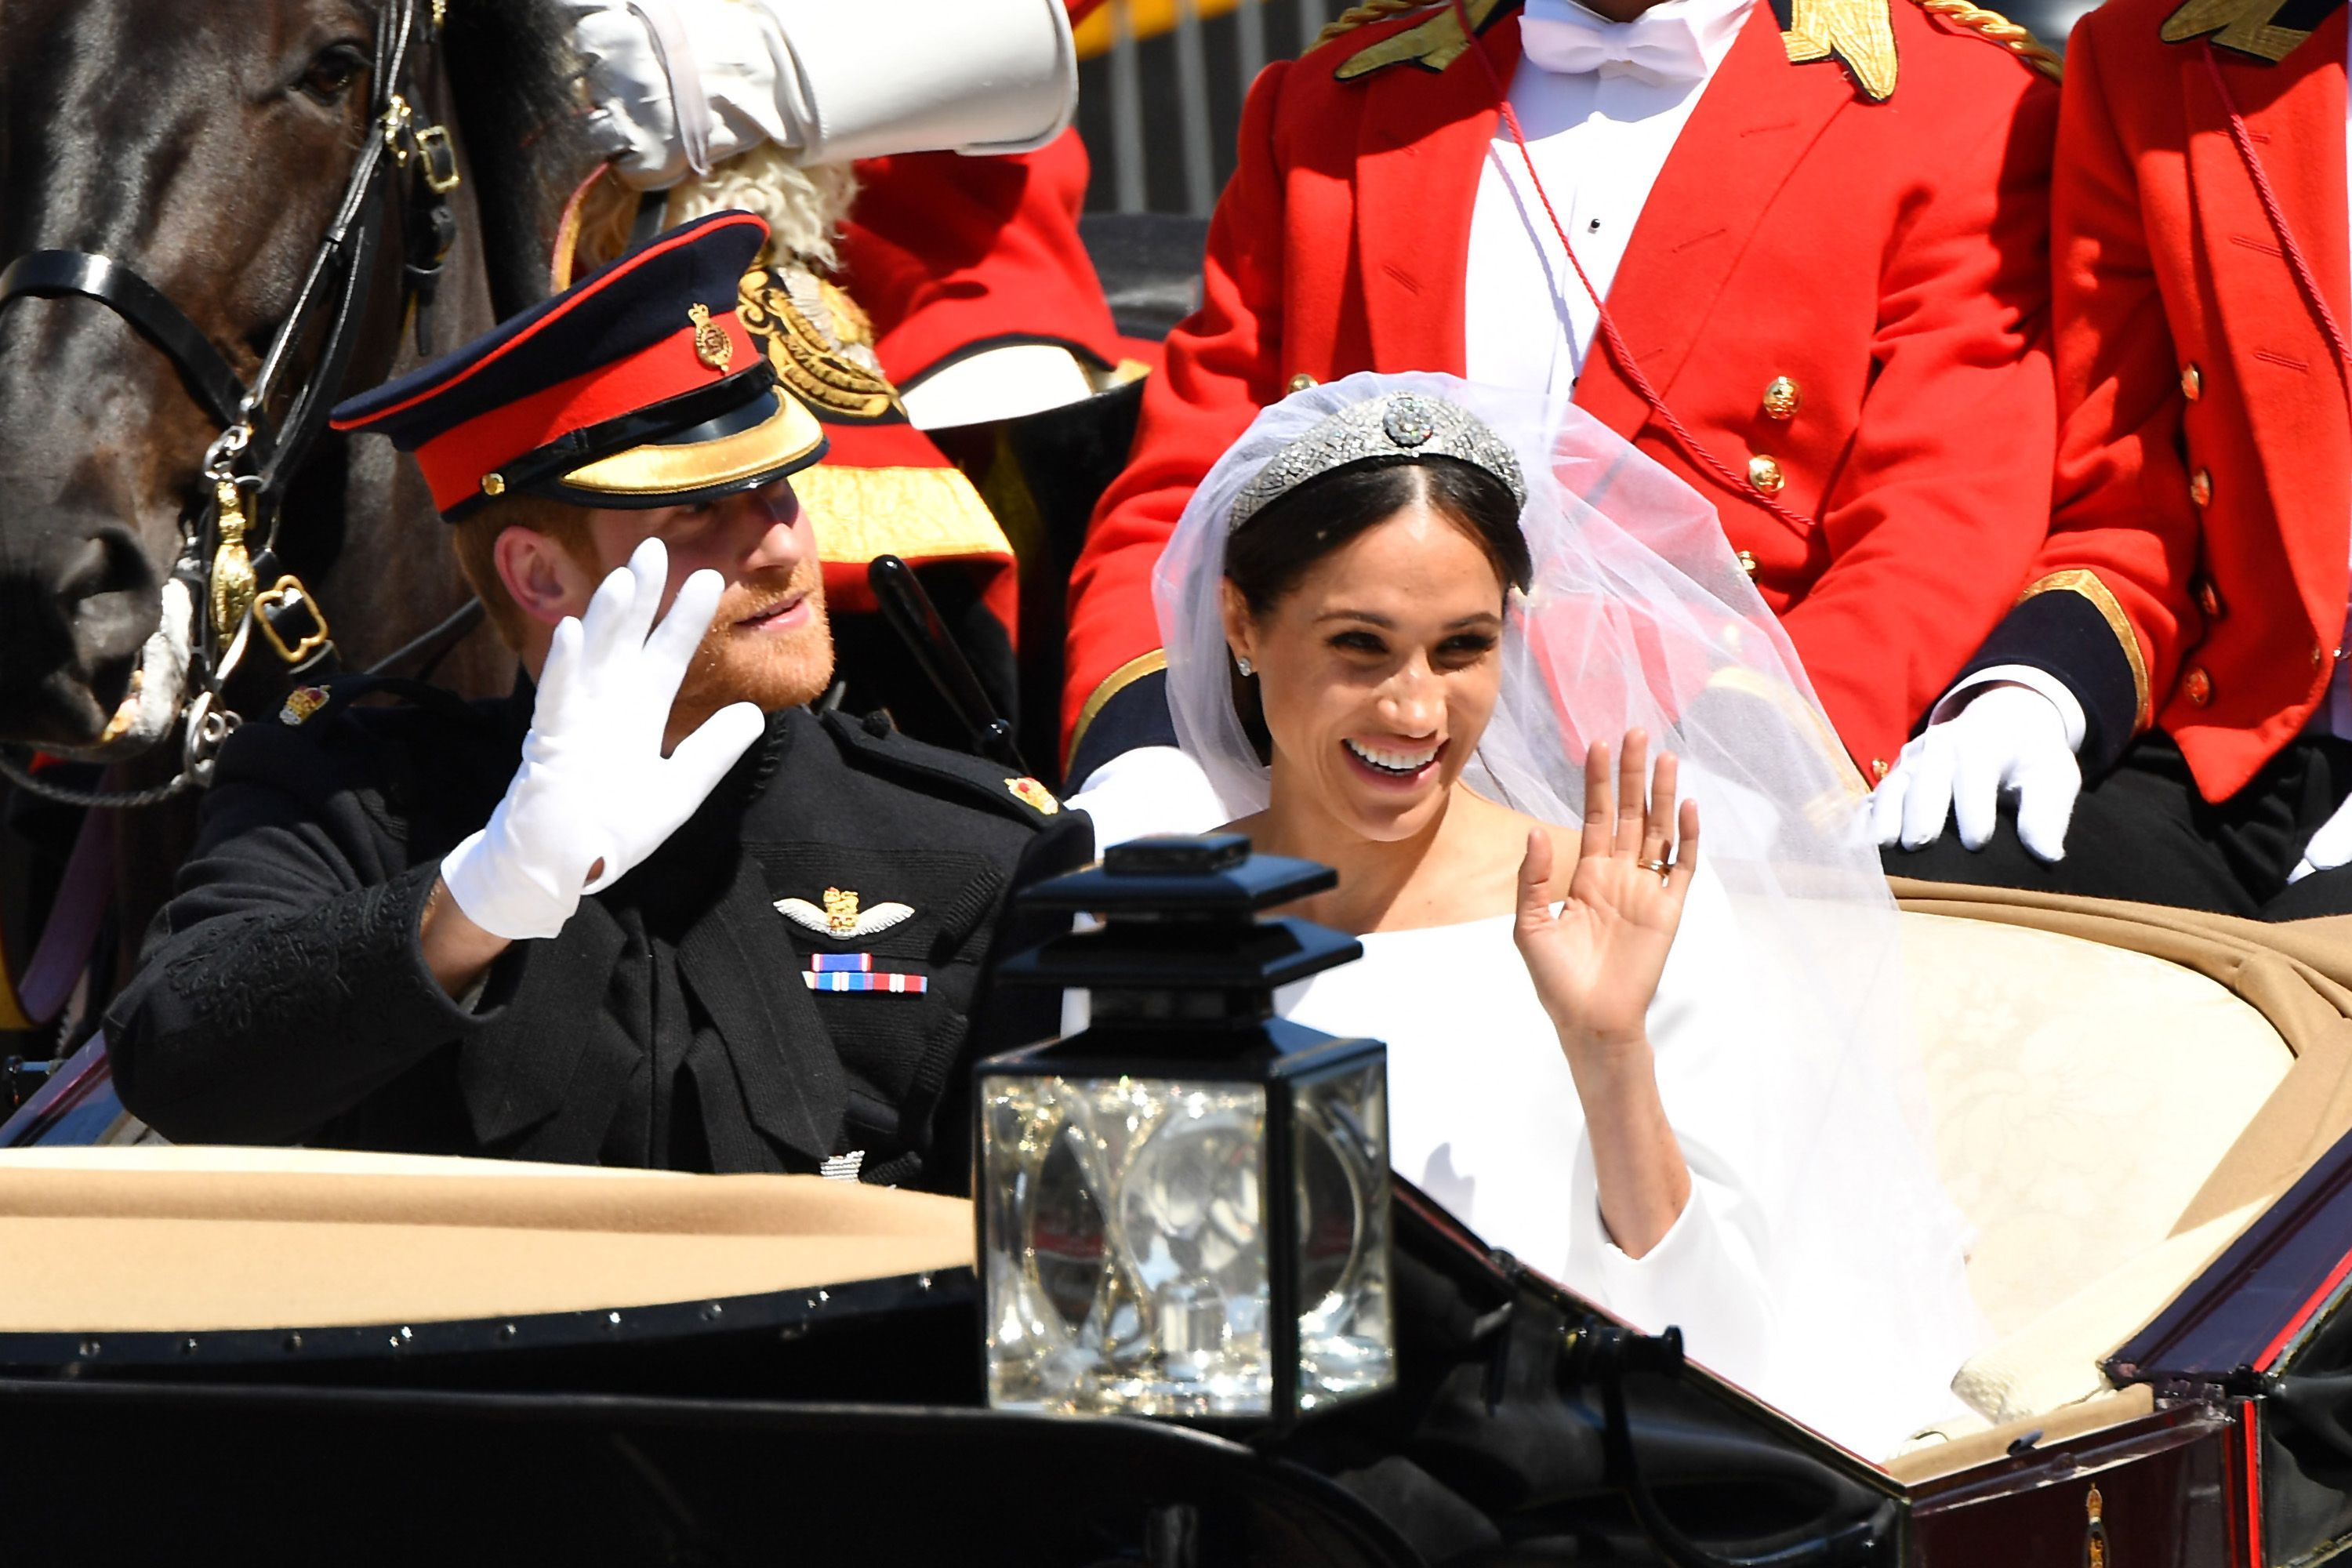 Meghan and Harry's wedding carriage is now on display at Buckingham Palace